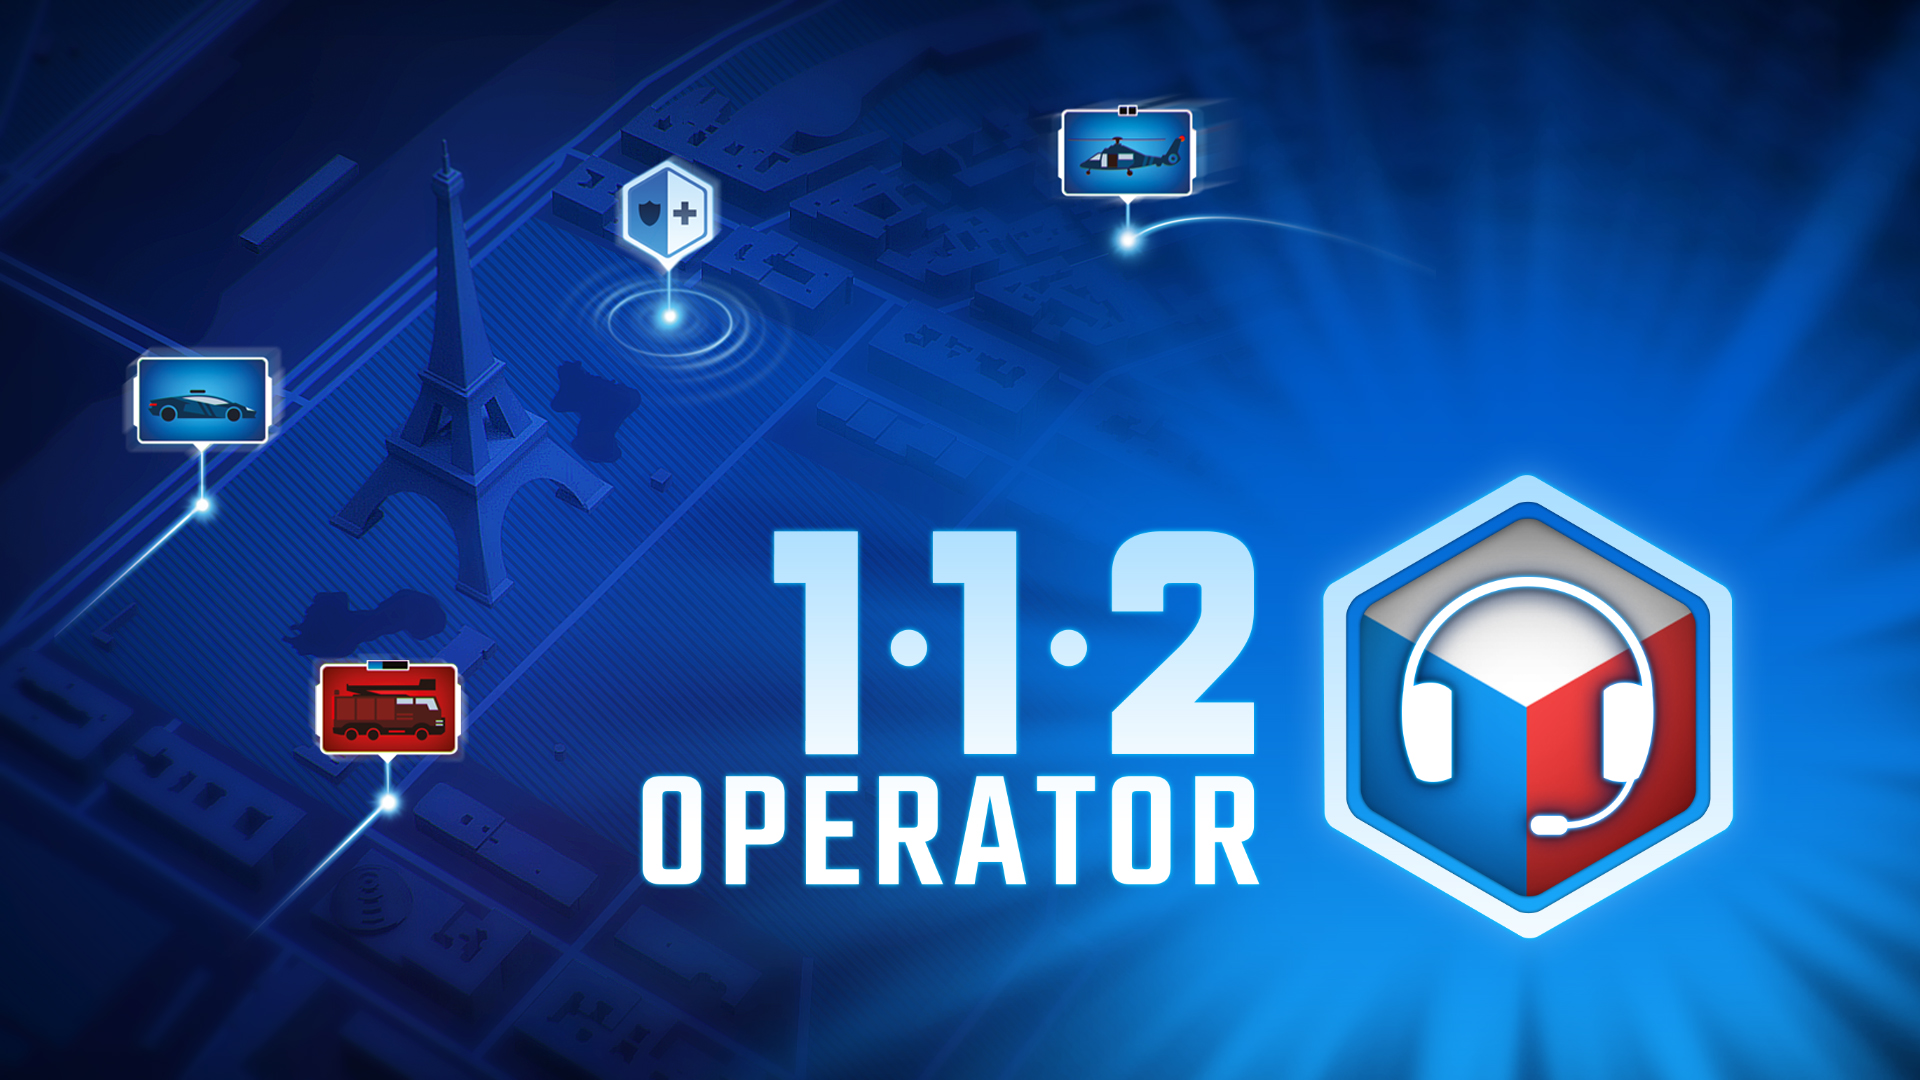 112 Operator - Pandemic Outbreak Free Download